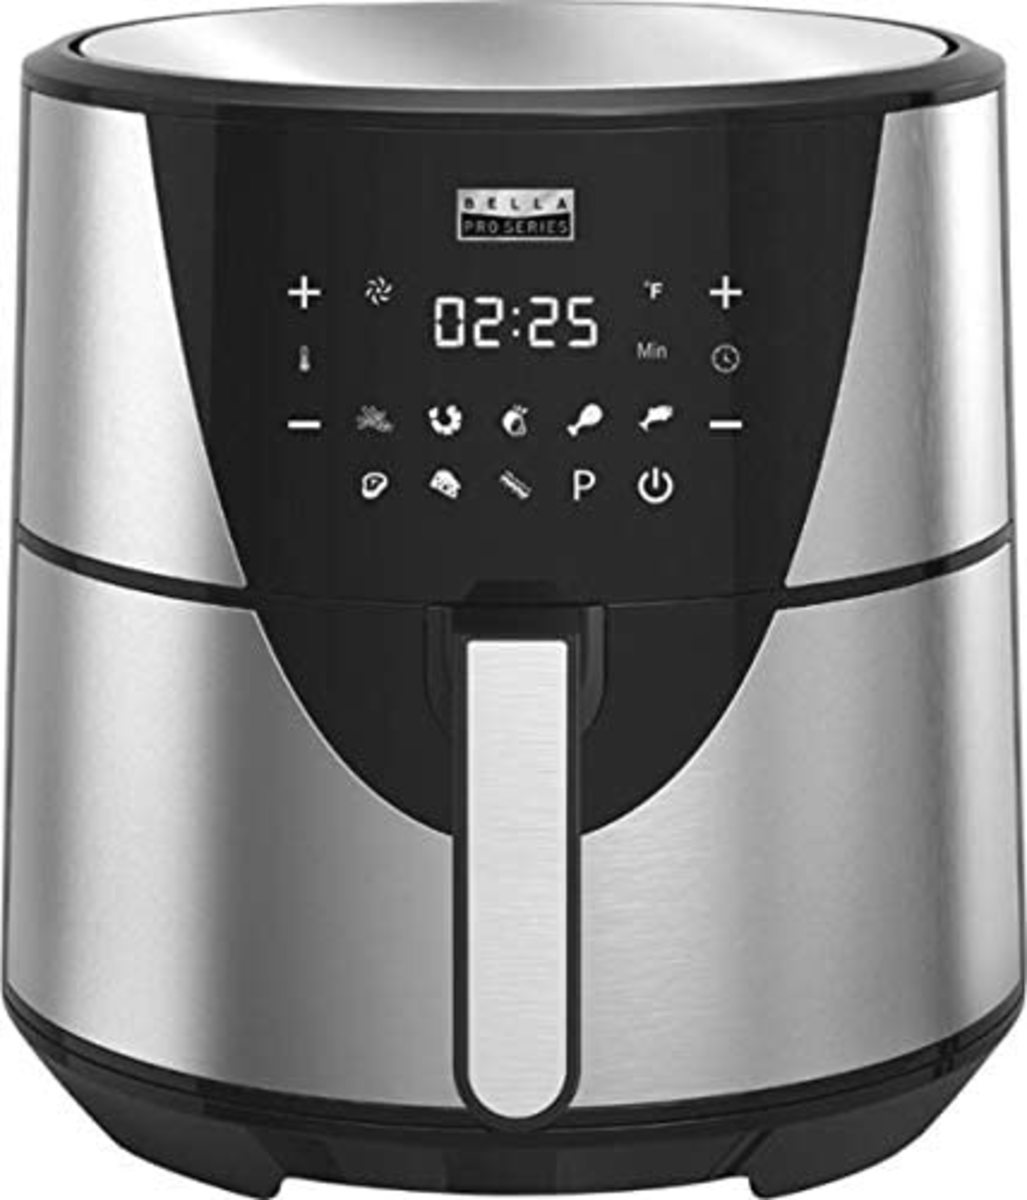 What Size Air Fryer Do I Need?